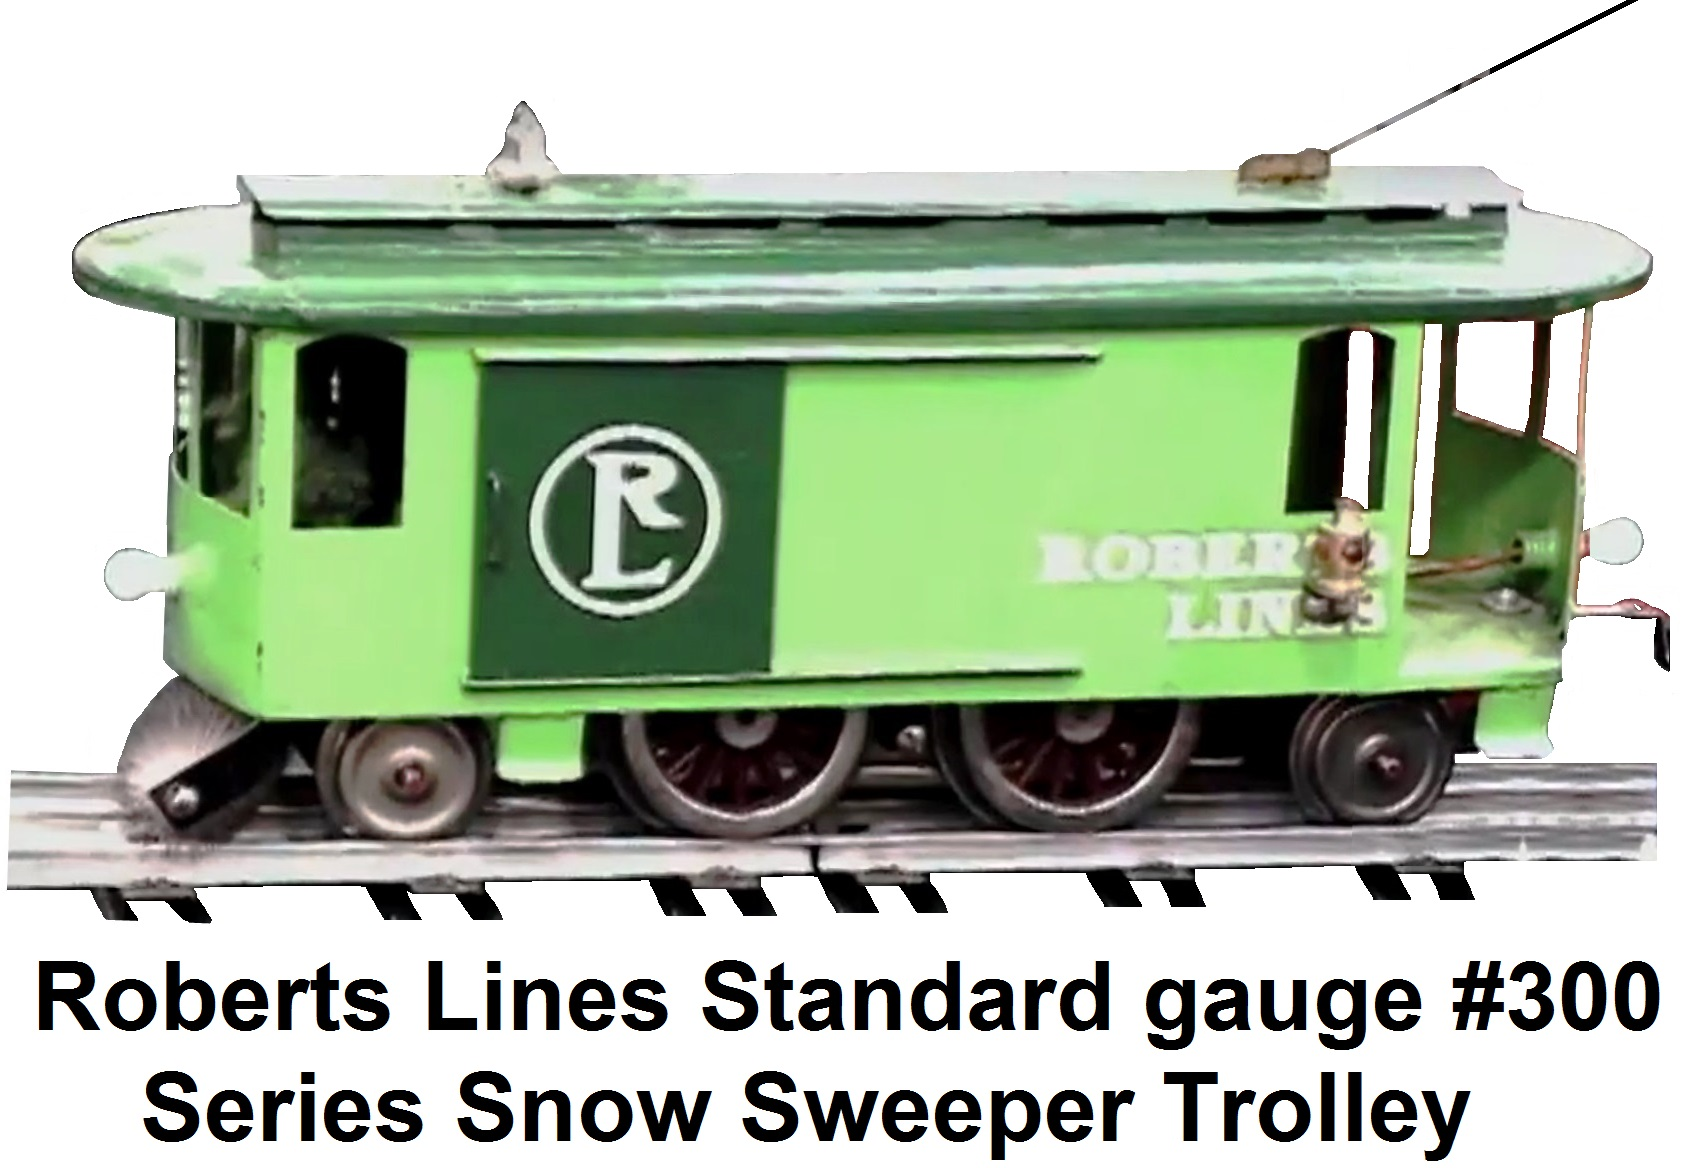 Roberts' Lines Standard gauge #300 Snow Sweeper Trolley